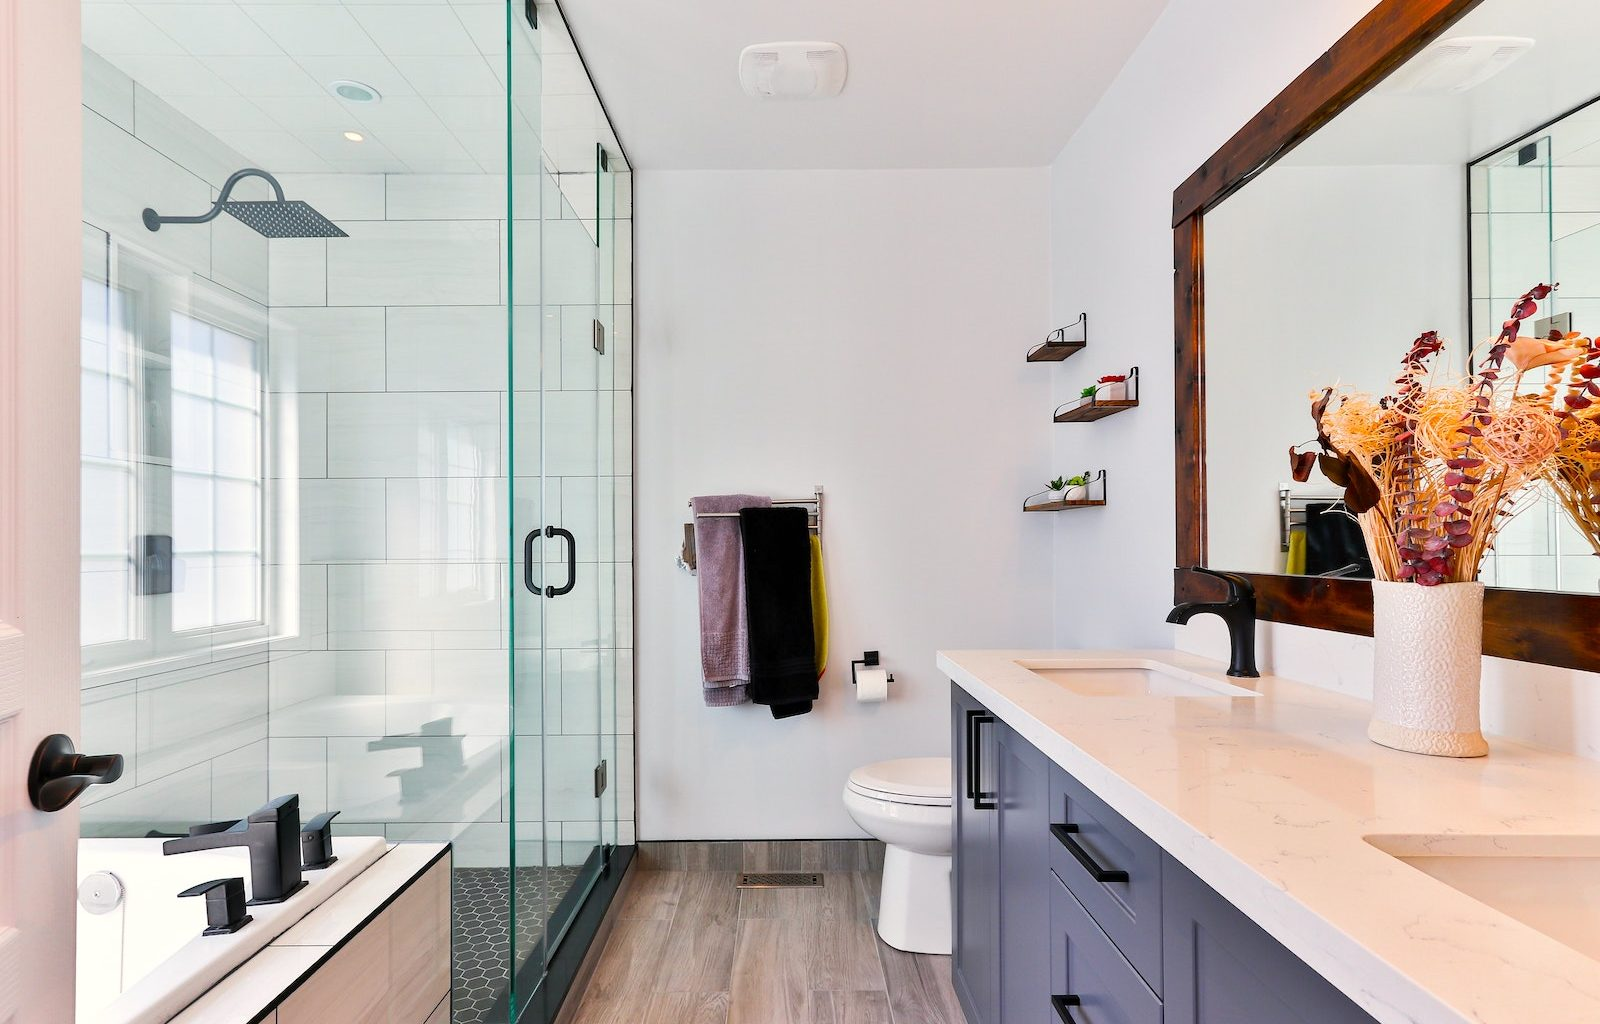 How long to renovate a bathroom